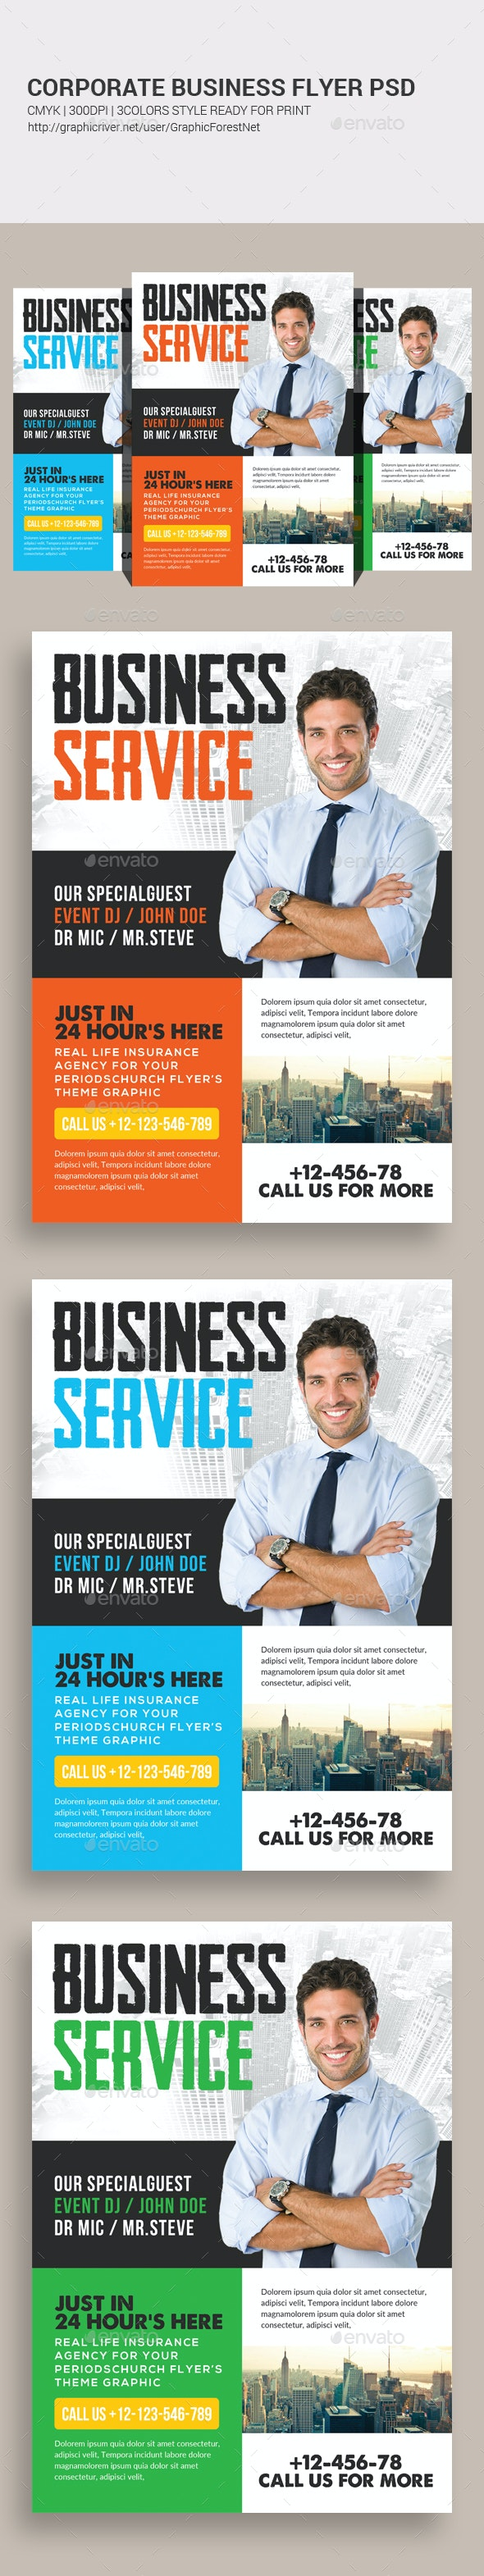 Business Flyer Psd - Corporate Flyers